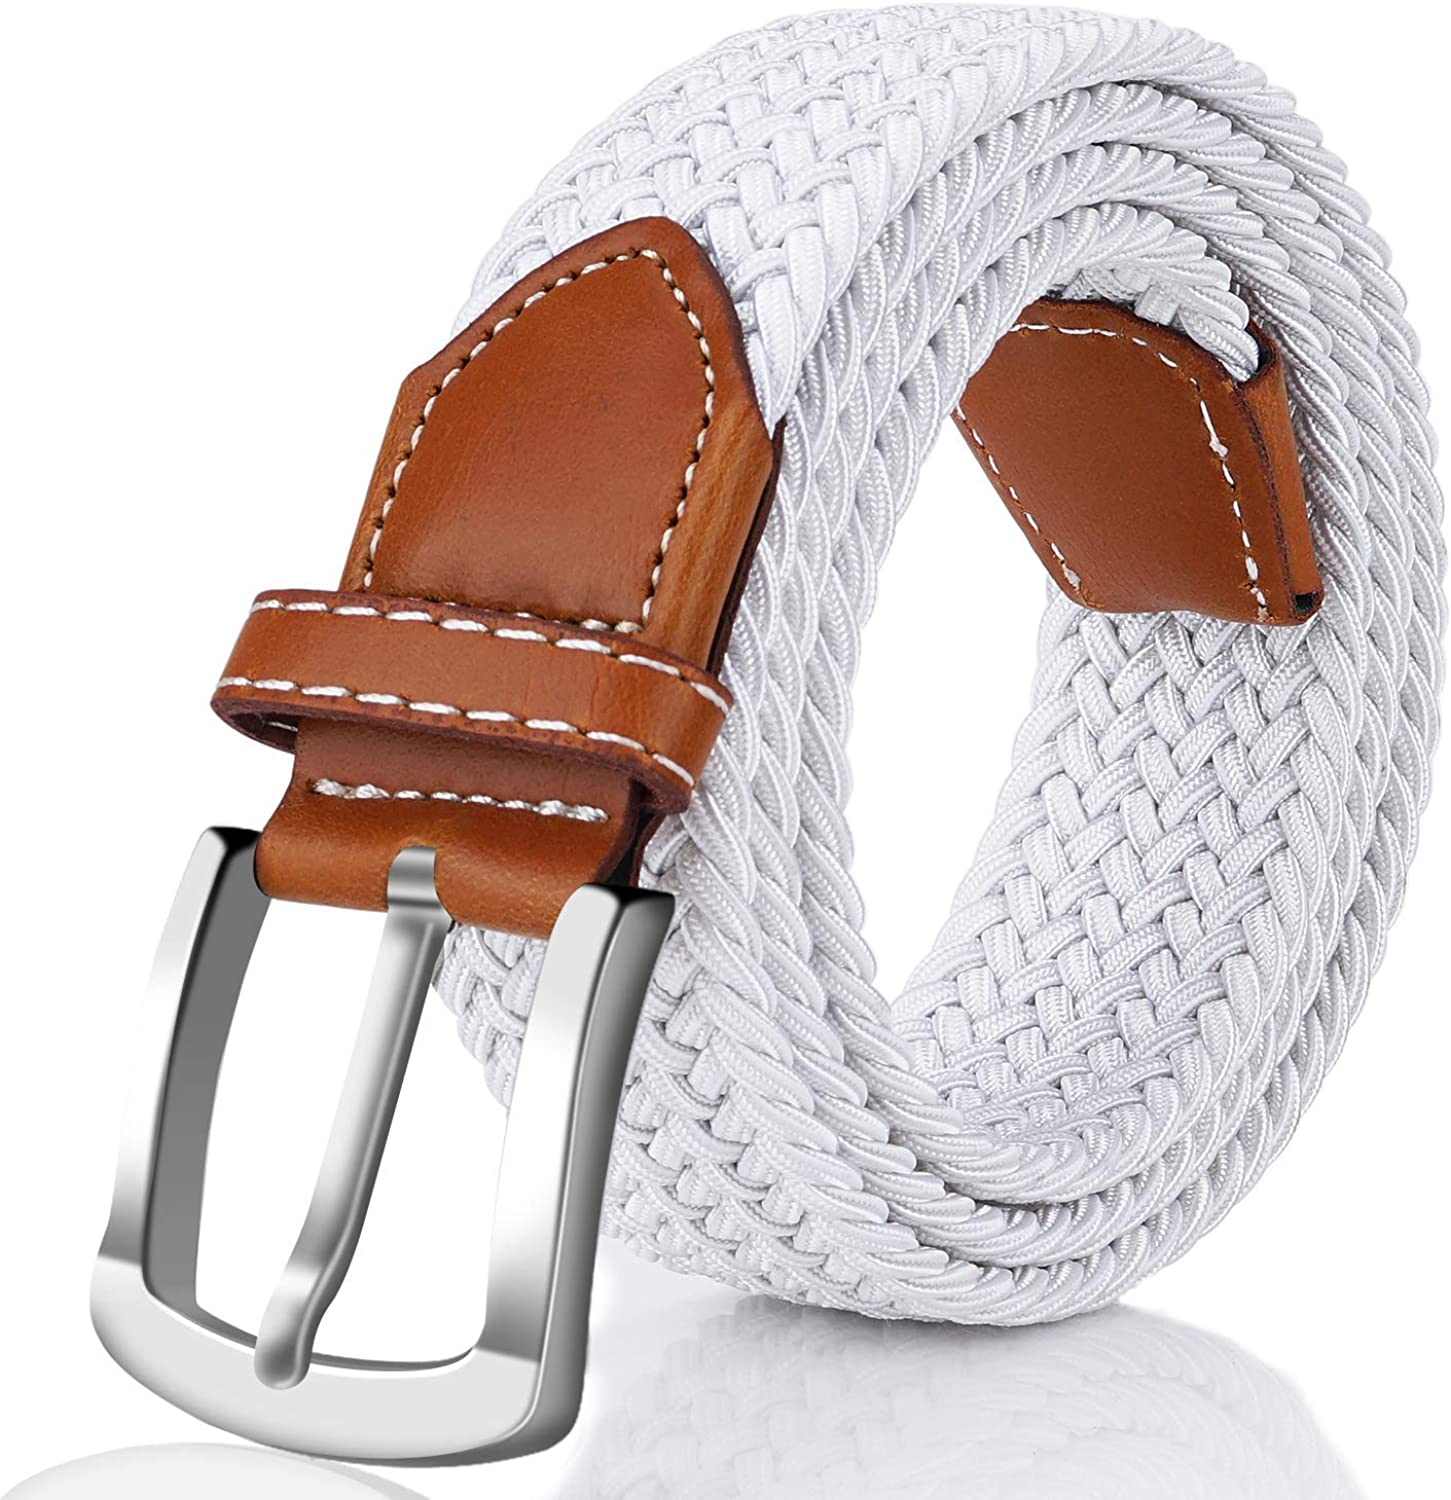 Fairwin Elastic Braided Belt 1.3 Stretch Belt Fabric Woven Belt for Men and Women